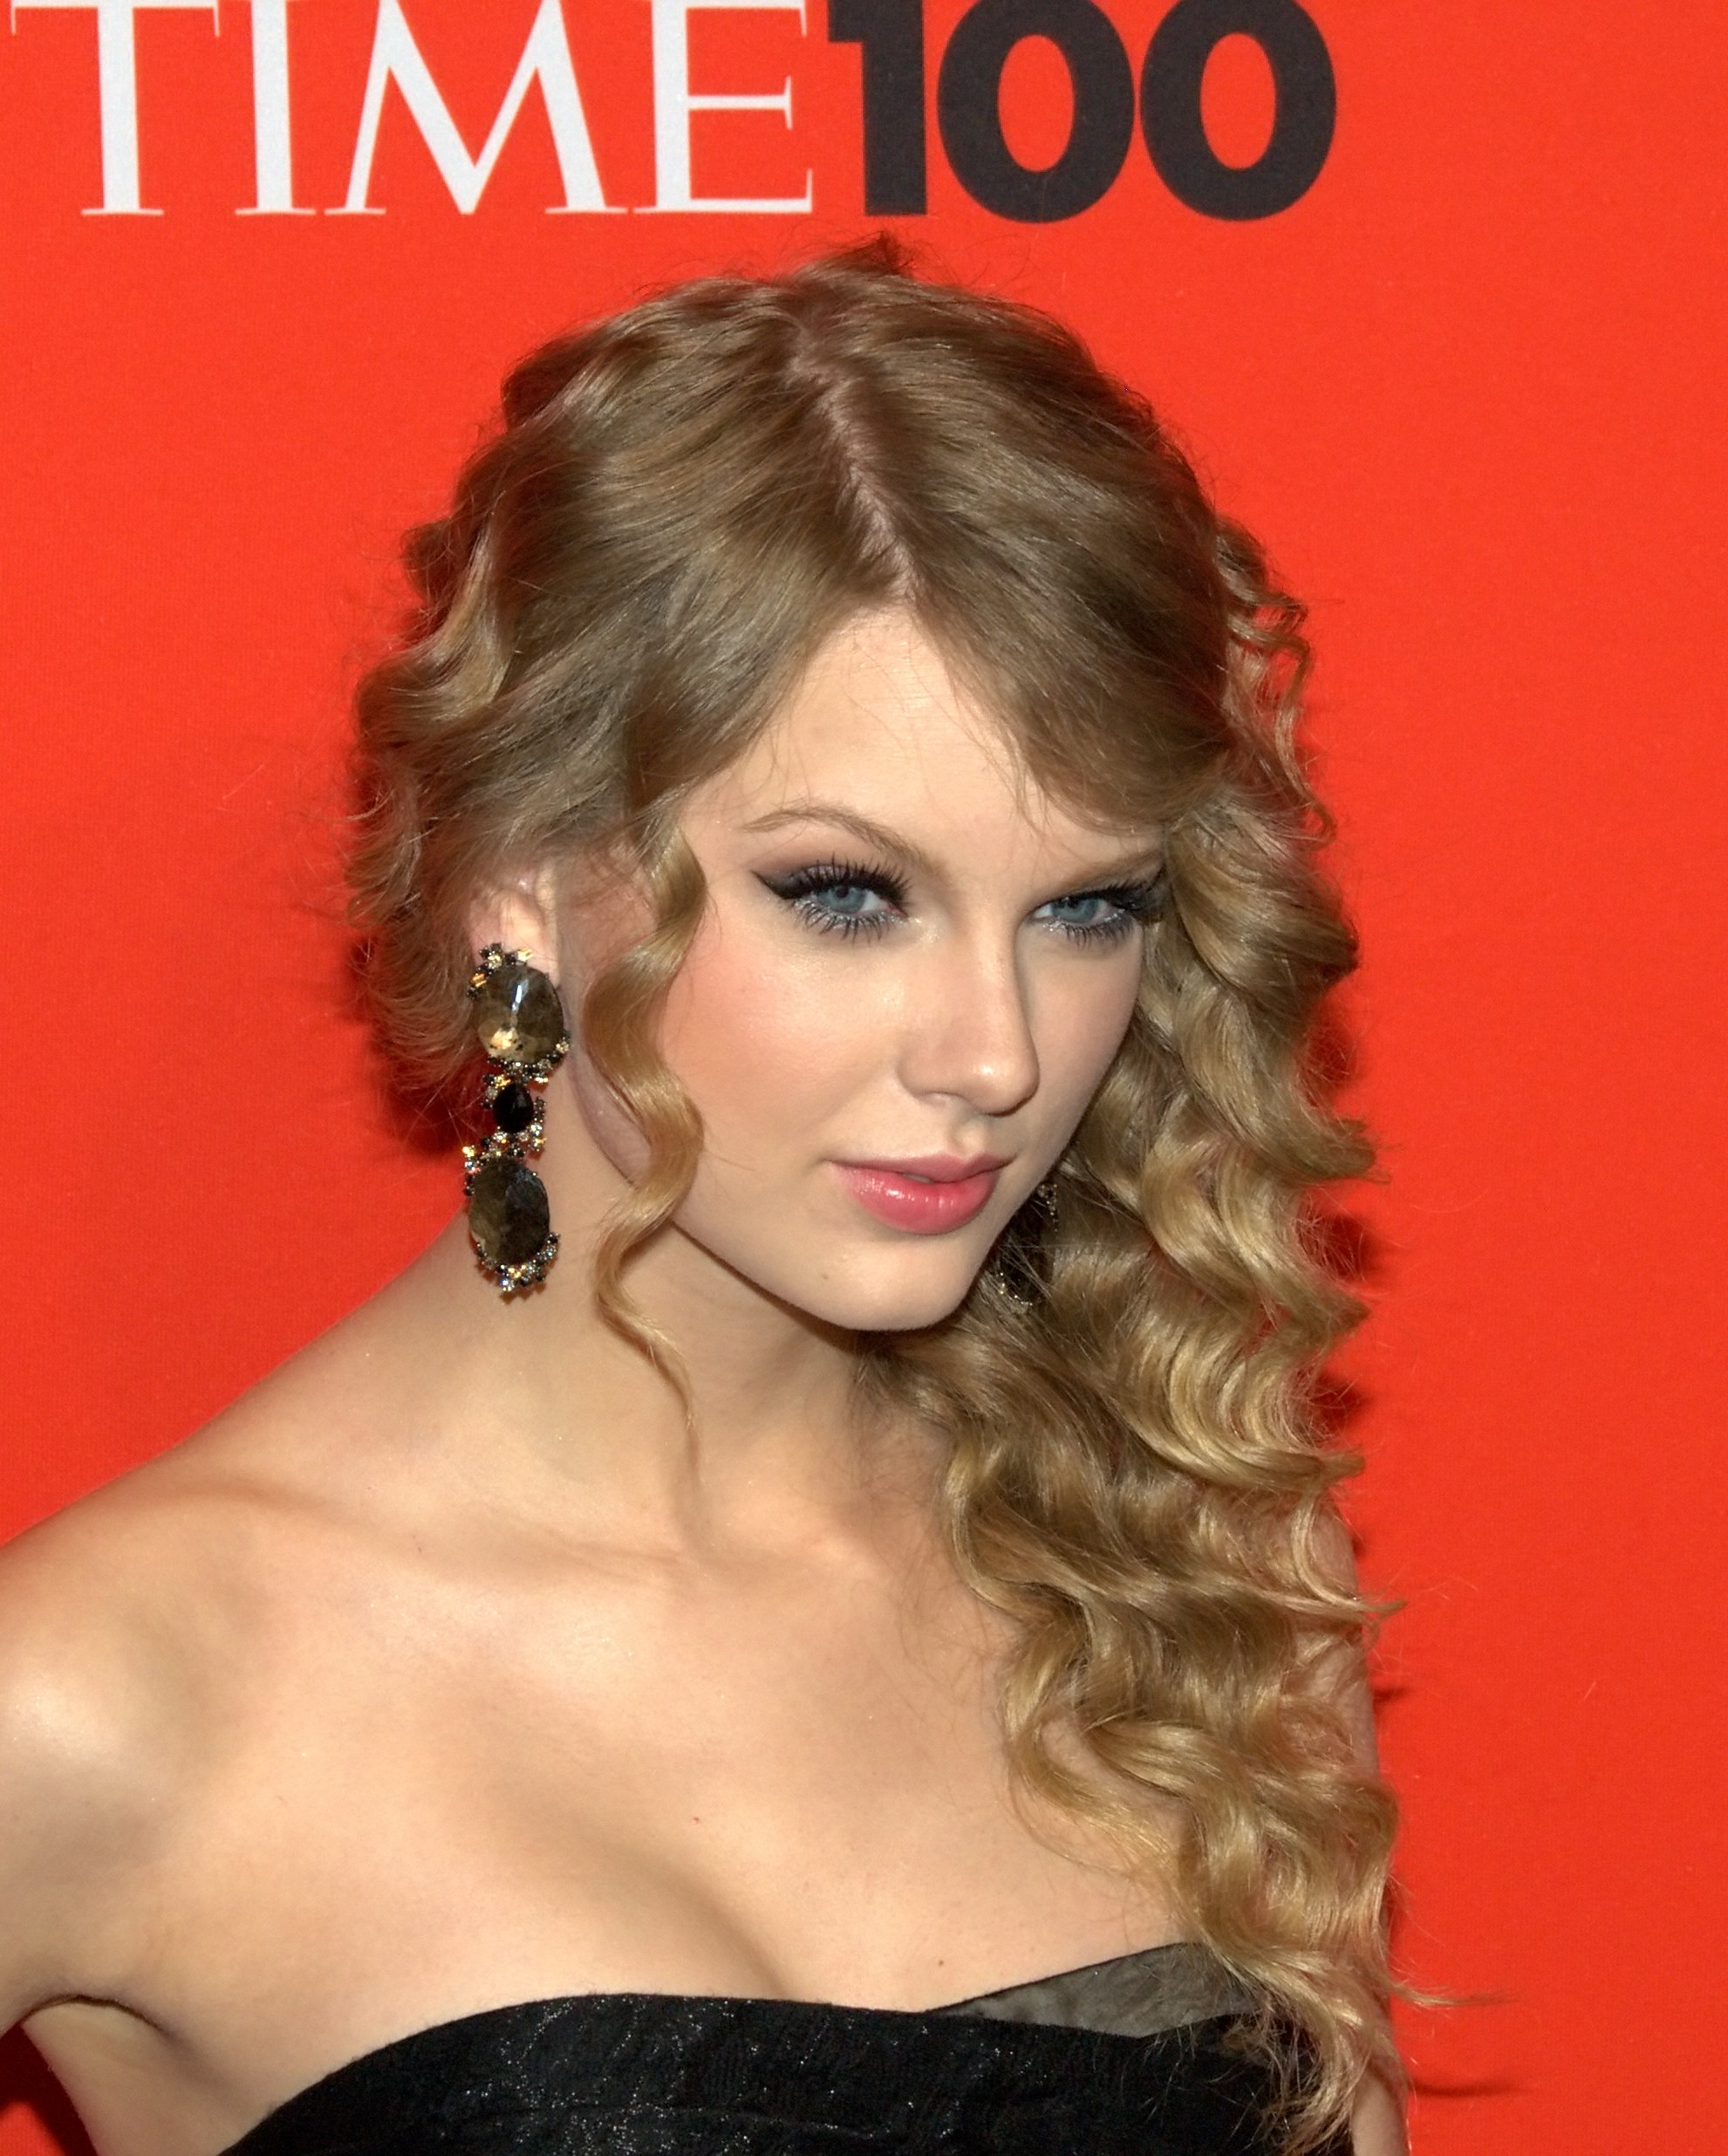 Taylor_Swift_by_David_Shankbone